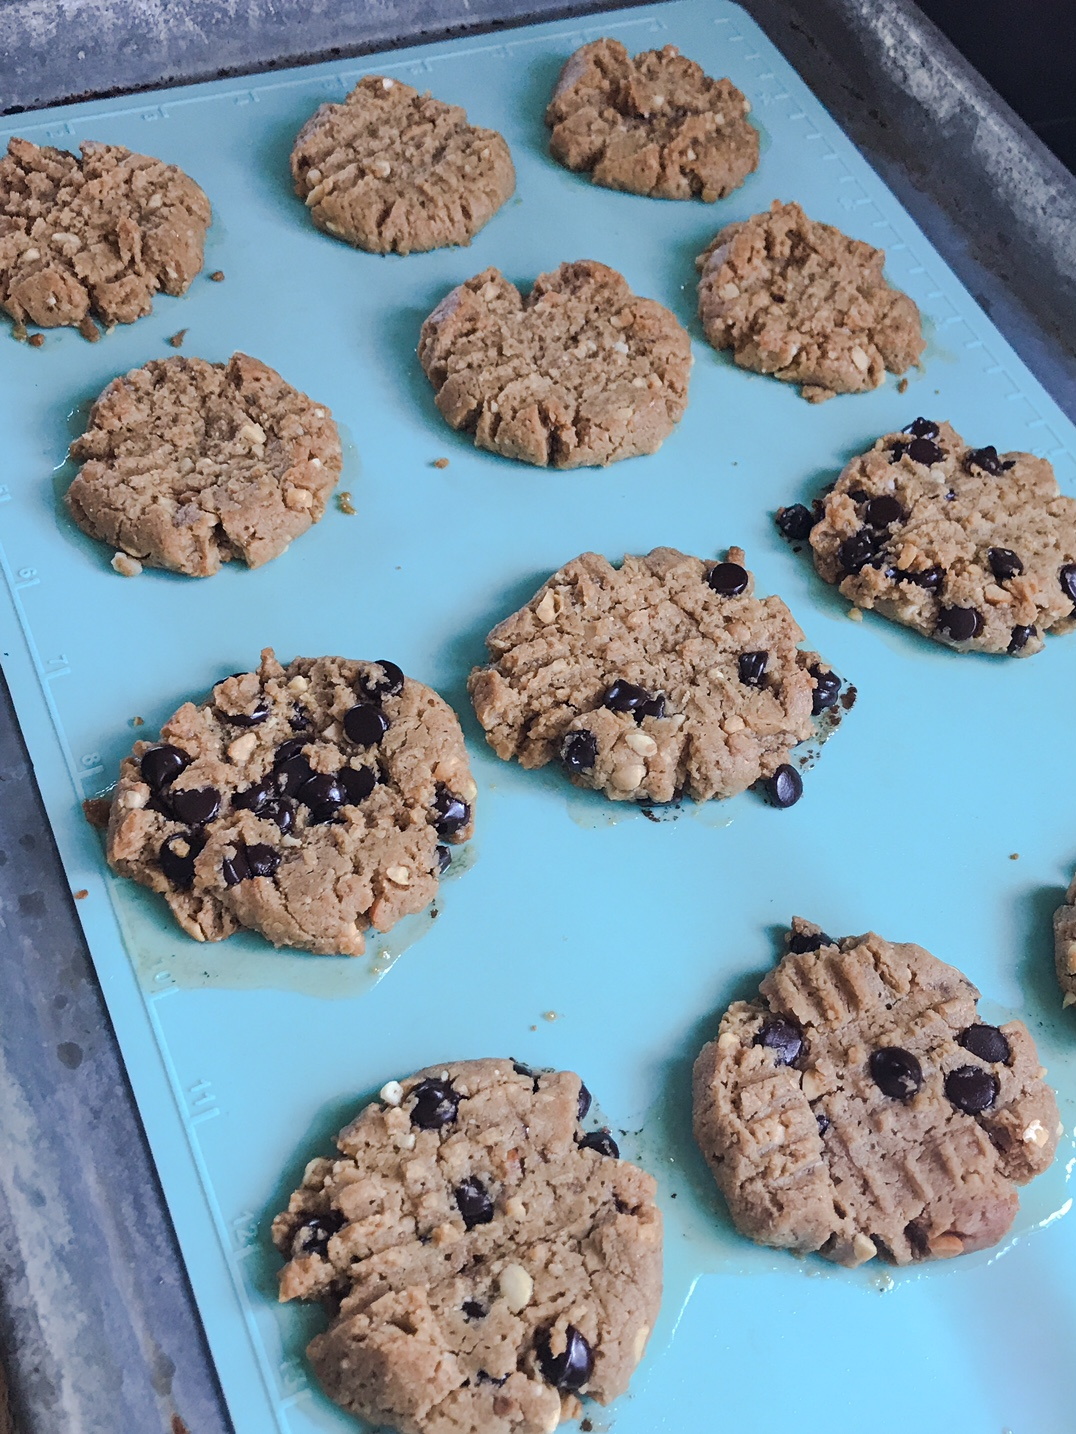 Cookies cooling on the cookie sheet.